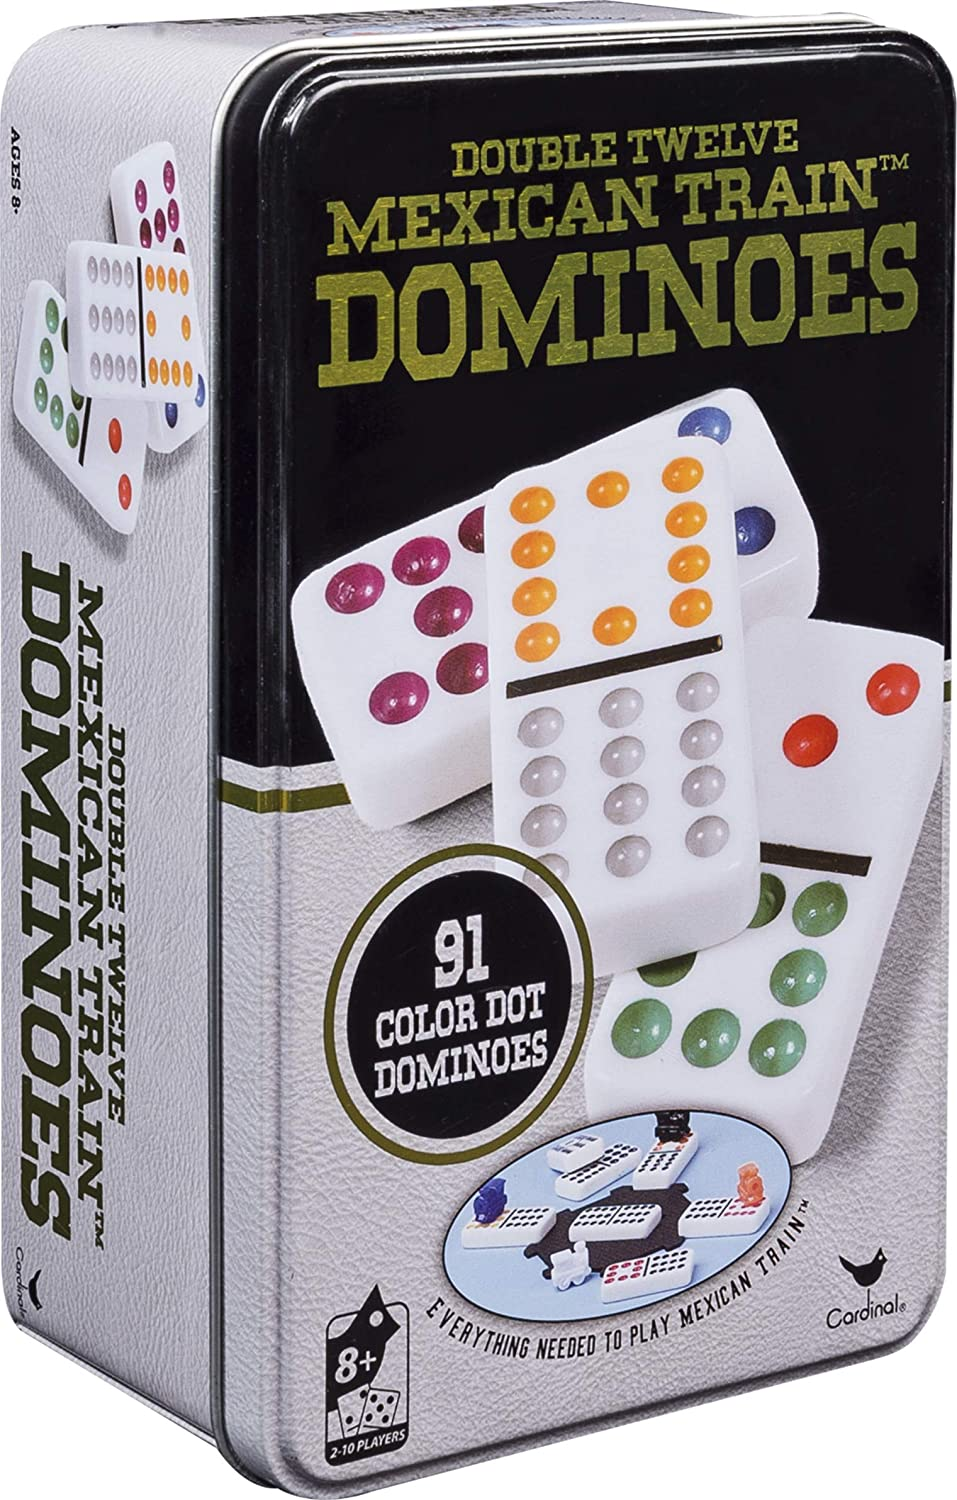 Double Twelve Mexican Train in Tin Japan Maker New Dominoes Store